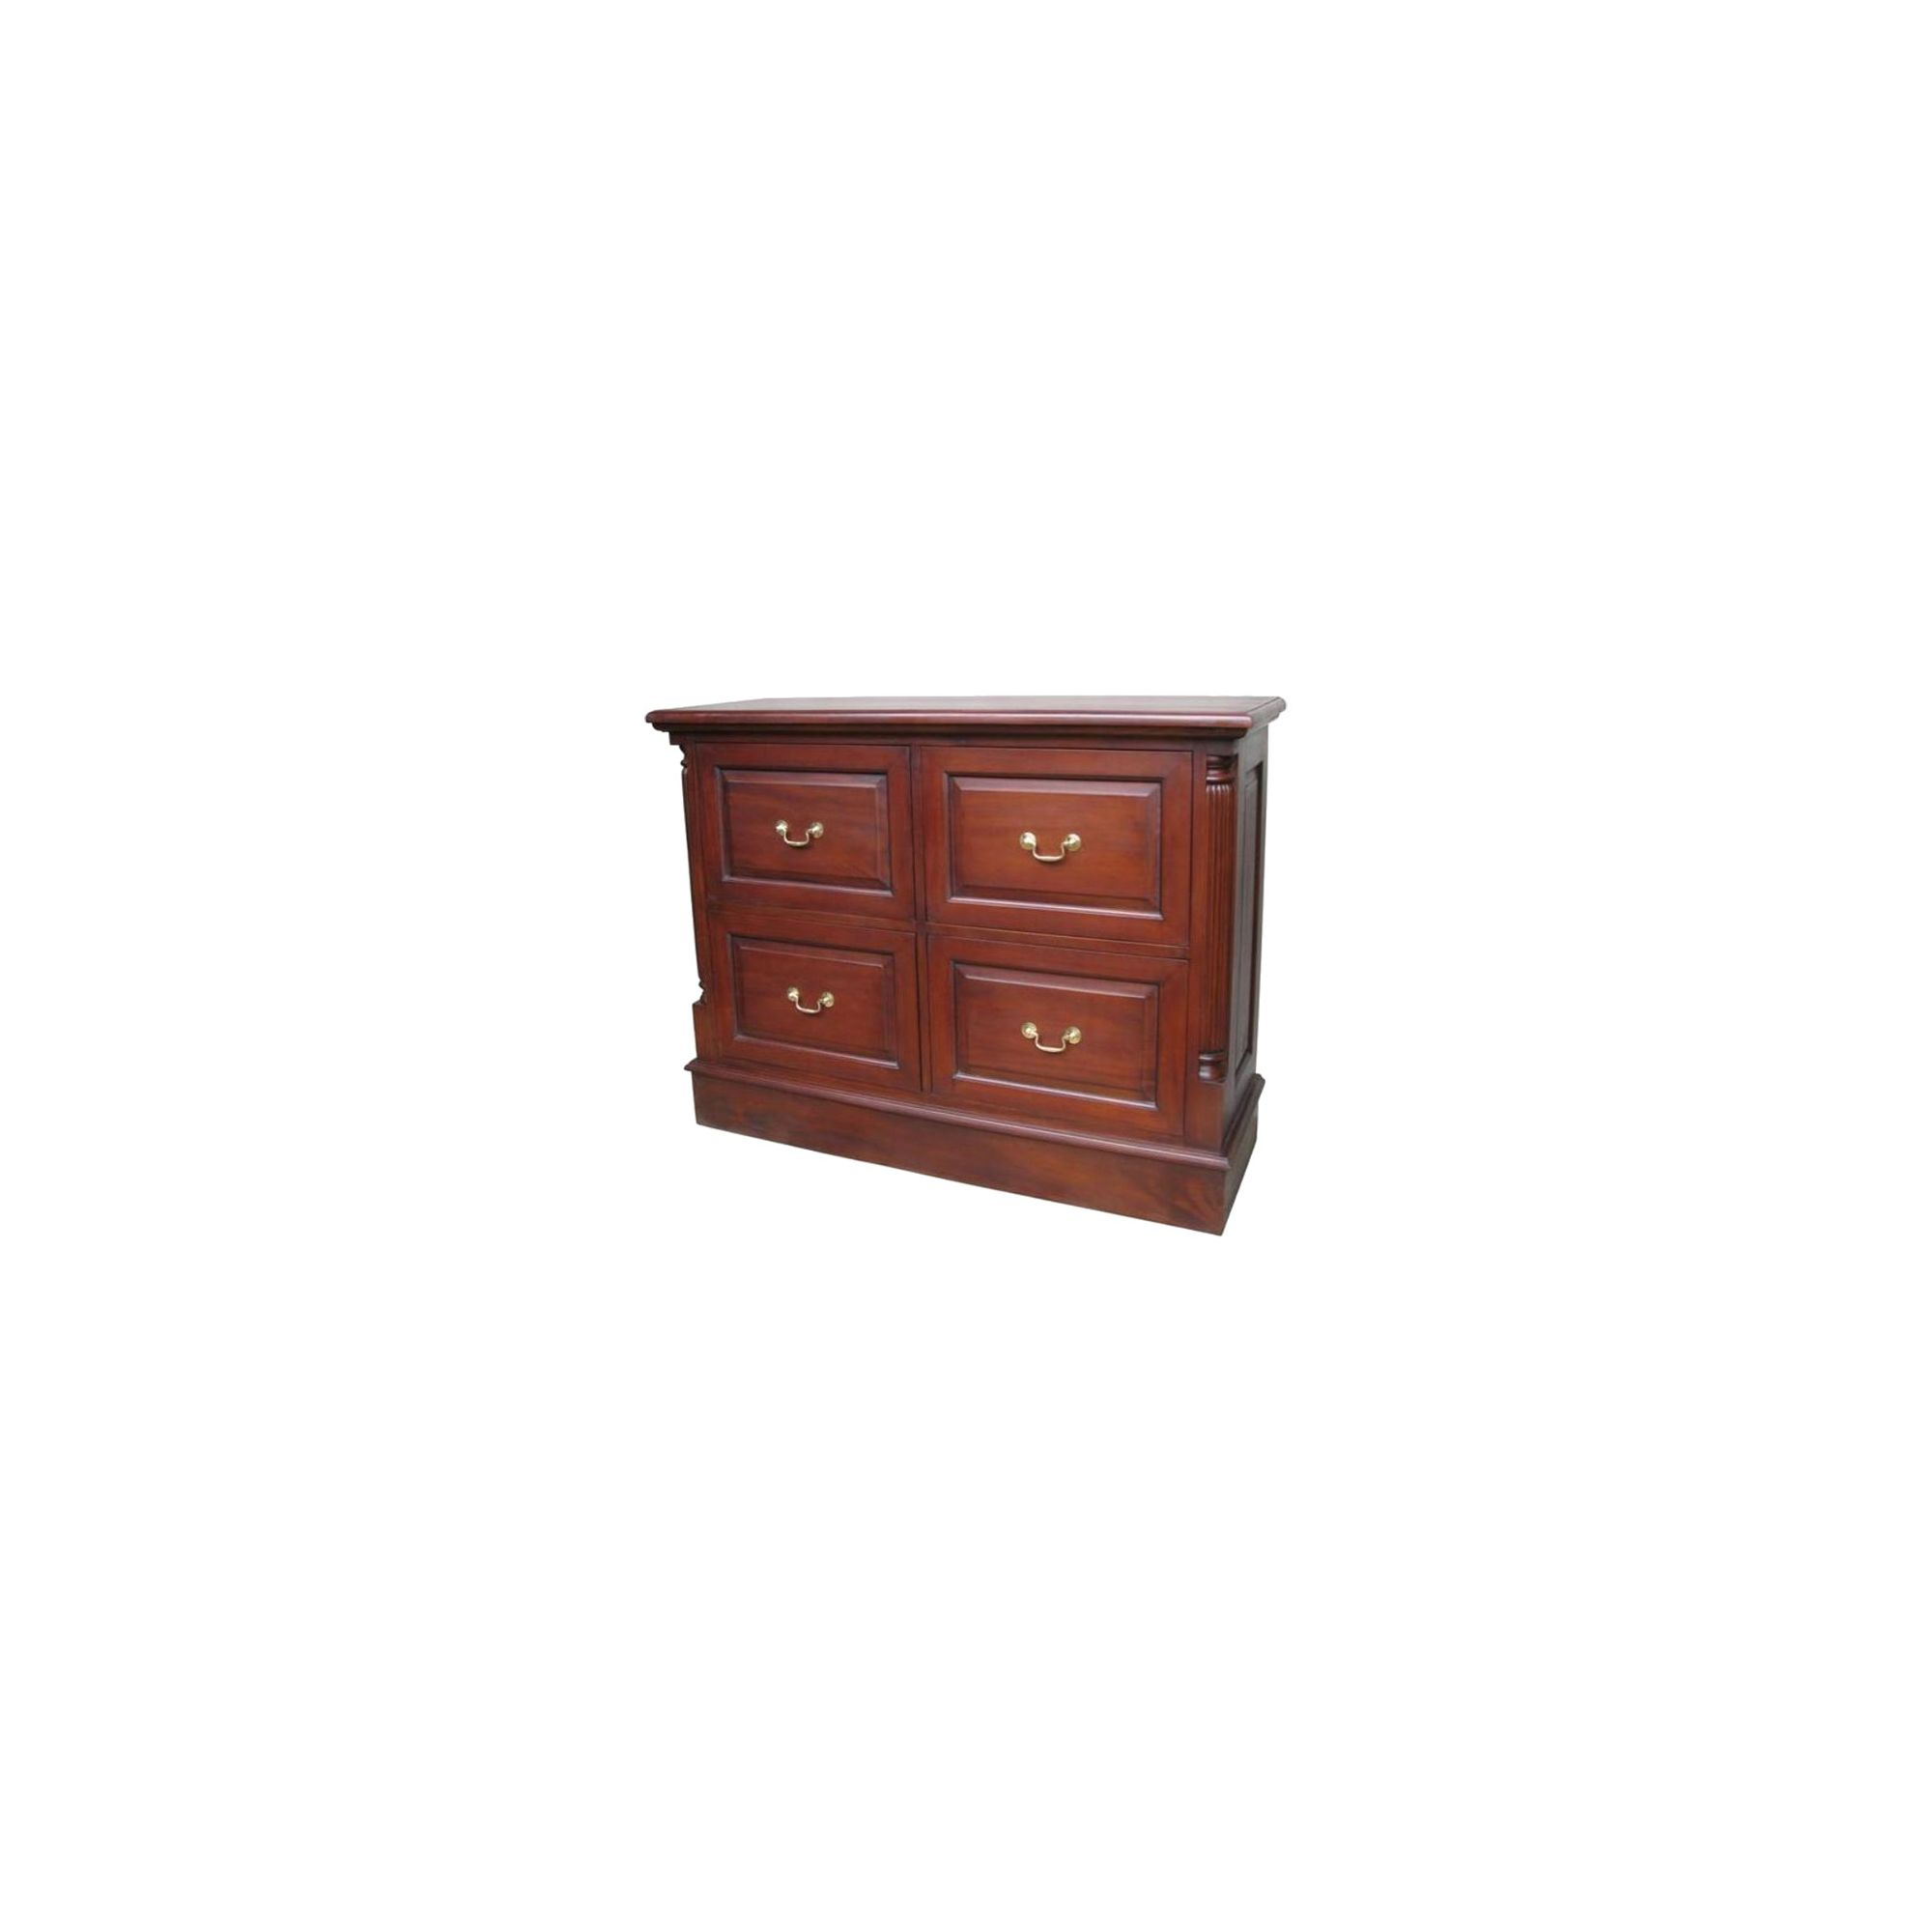 Lock stock and barrel Mahogany 4 Drawer Filing Cabinet in Mahogany at Tesco Direct